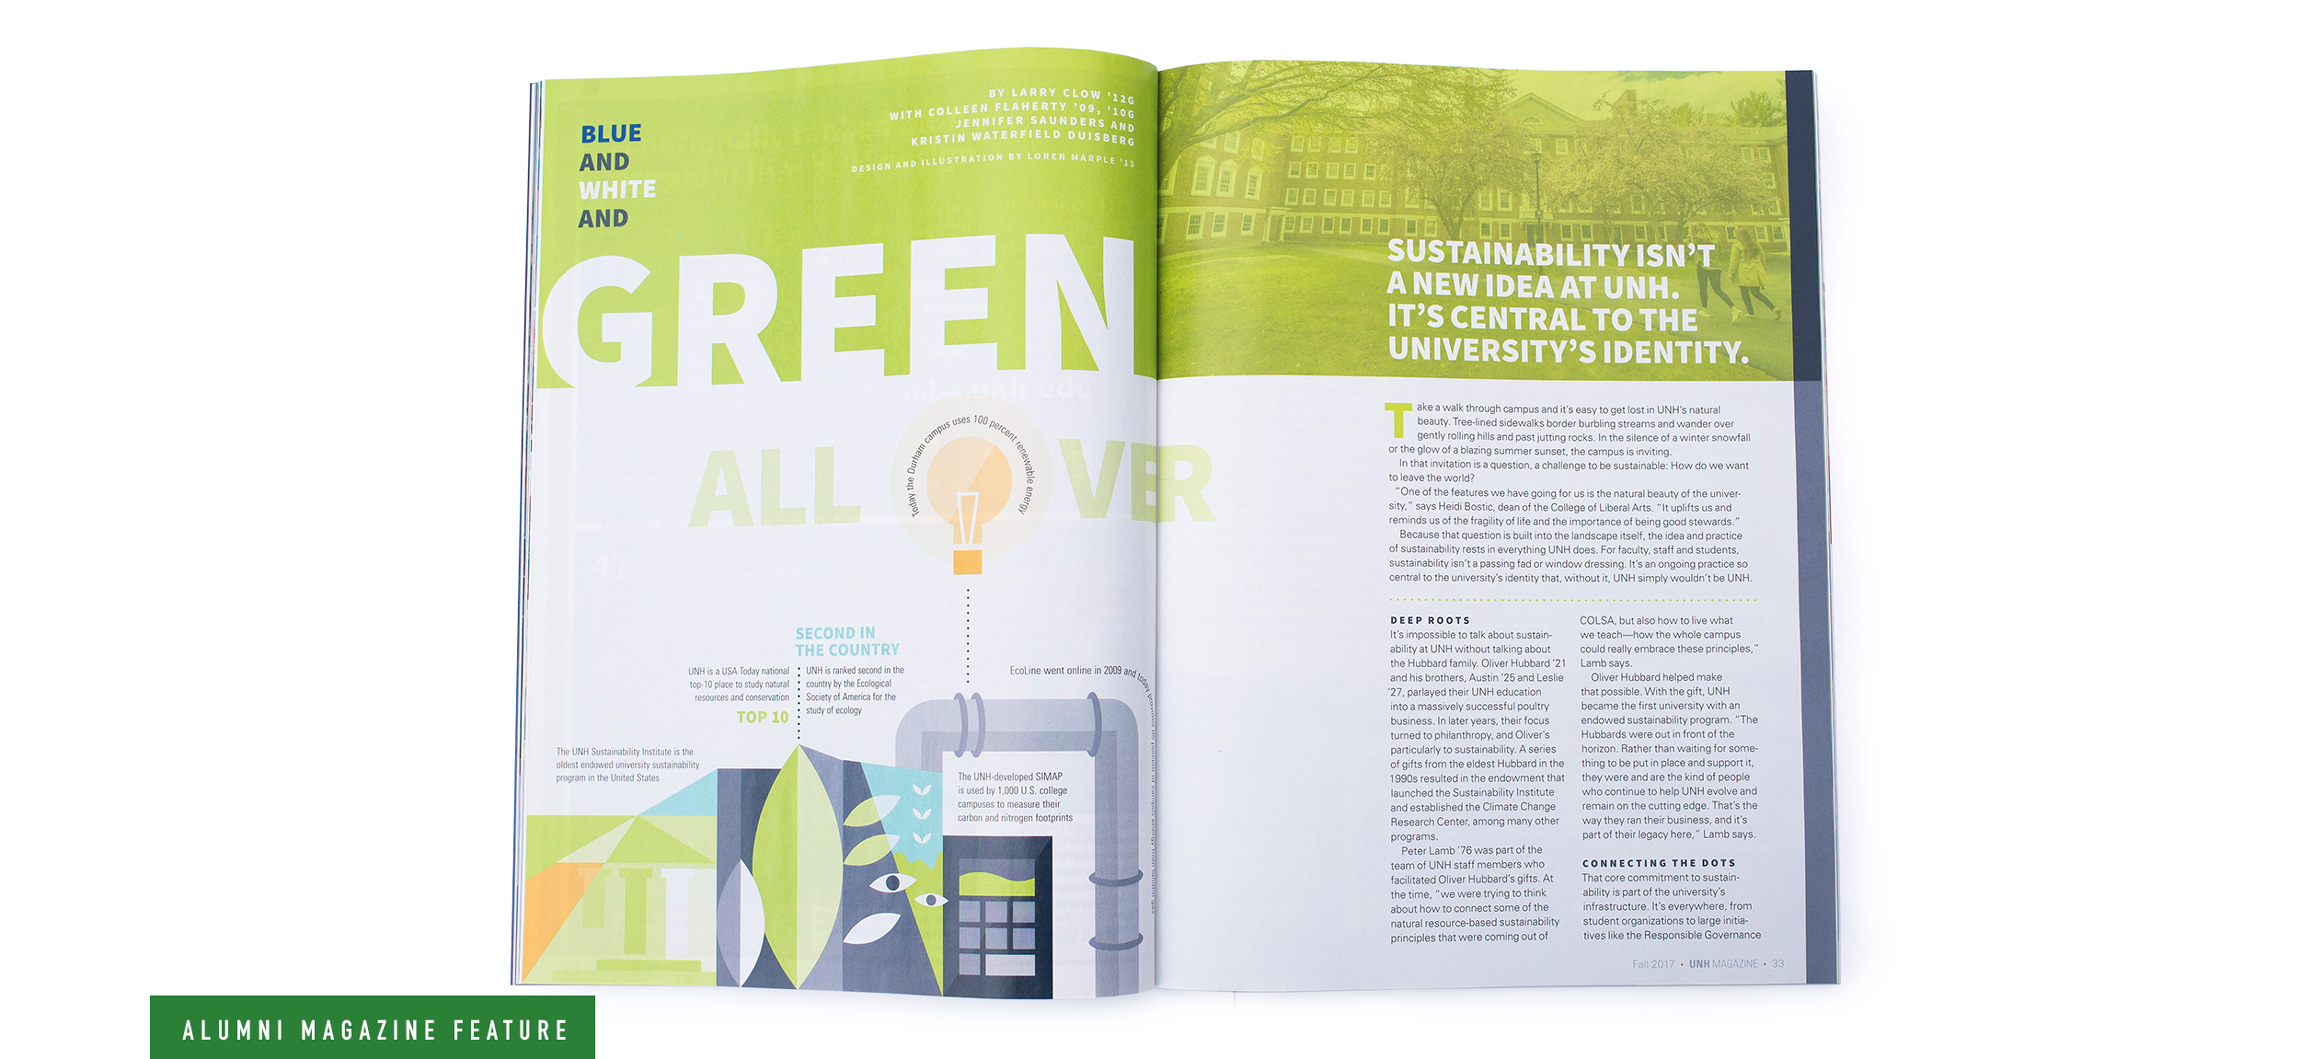 UNH Alumni Magazine Sustainability Opening Spread 2 Design and Illustration - Loren Marple